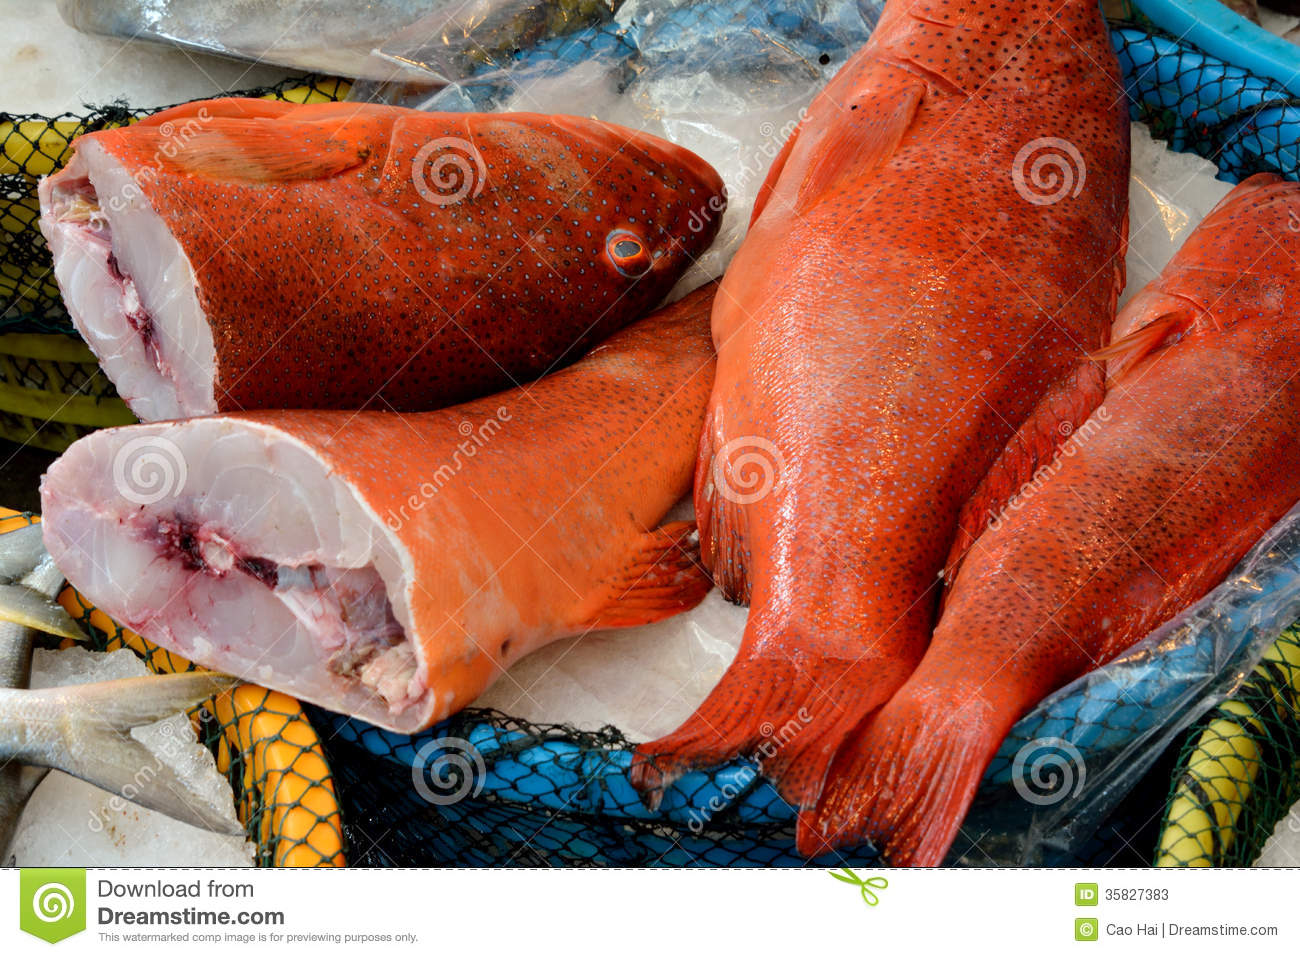 Perca Fish In Red Selling In Market Stock Image - Image of marine ...